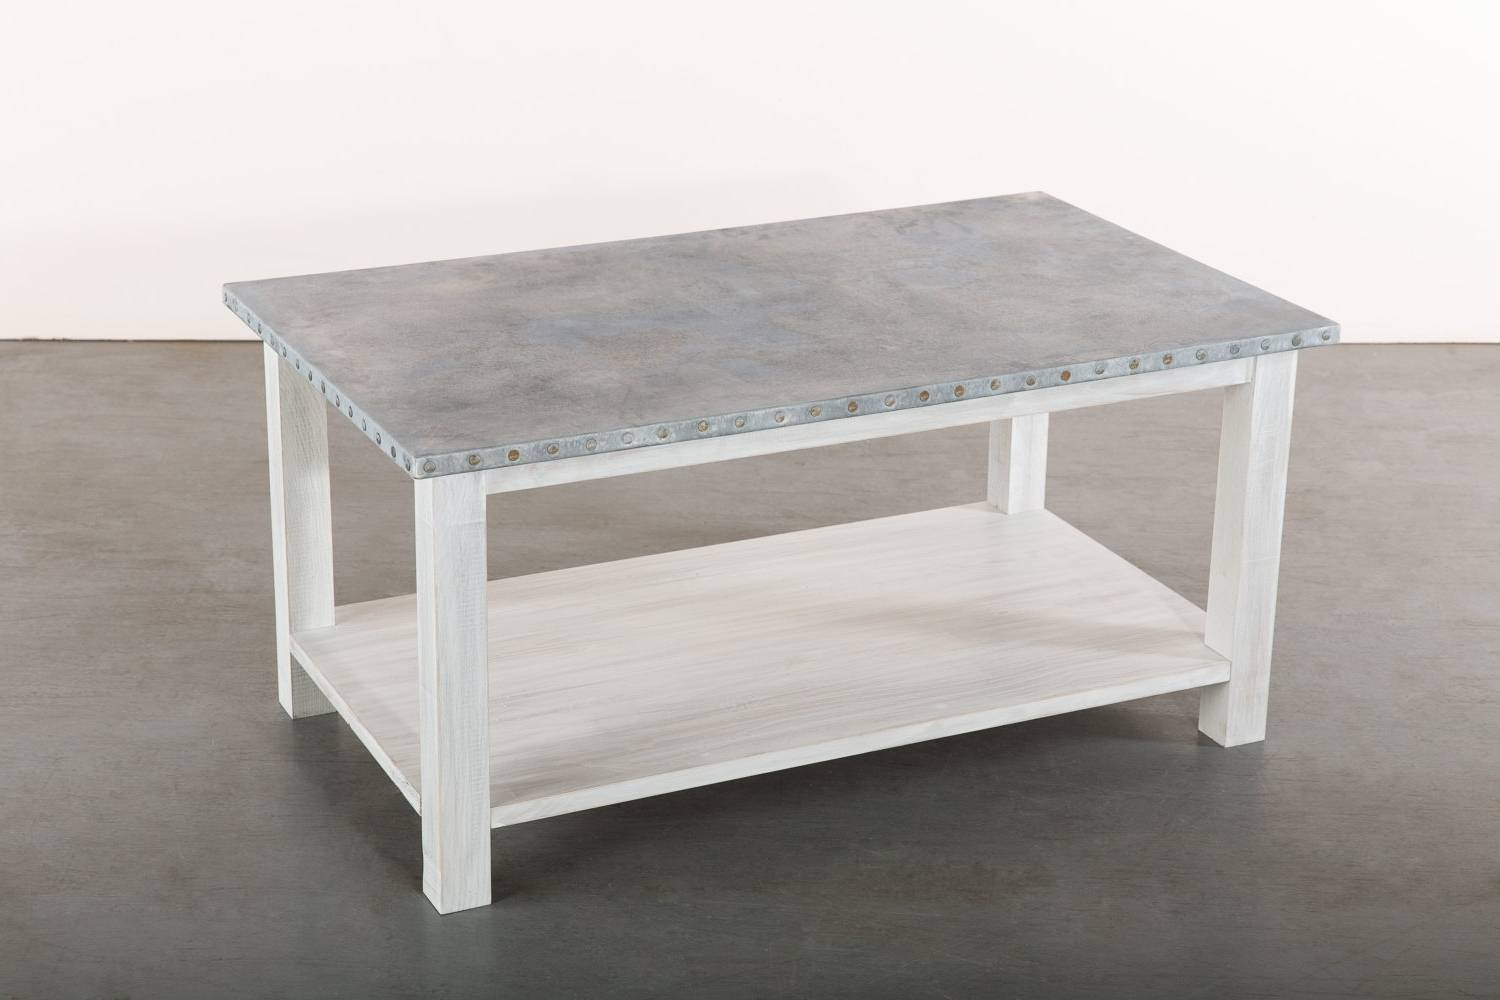 Coffee Table : Grey Wash Coffee Table Throughout Stylish Armen intended for Grey Wash Coffee Tables (Image 11 of 30)